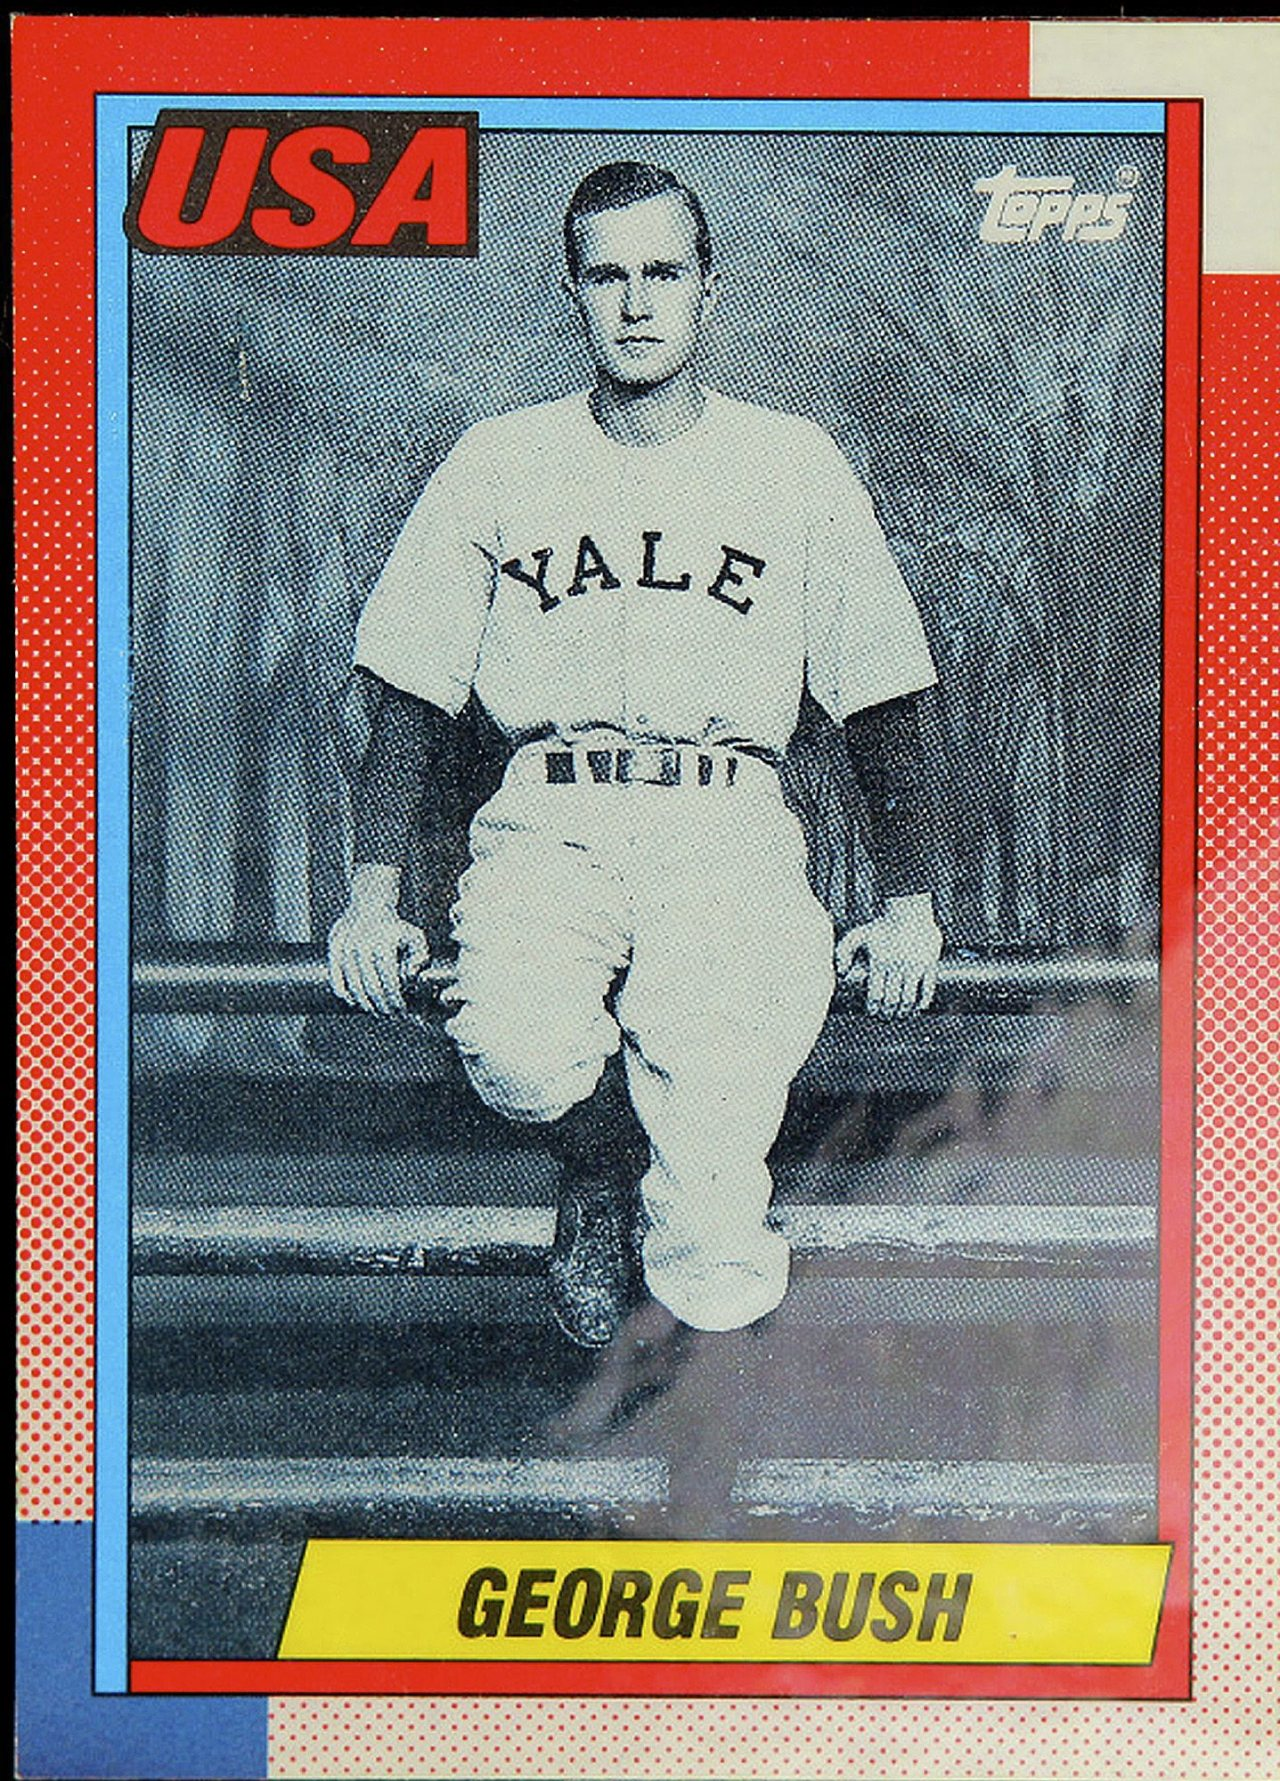 This photo, released by Professional Sports Authenticator, shows a baseball card produced by Topps trading card company in 1990 that depicts former President George H.W. Bush as a Yale first baseman. The card was one of those given directly to President Bush at the White House on Feb. 5, 1990 by Topps CEO Arthur Shorin. Baseball cards depicting the former president have fetched thousands of dollars each since they were specially-made for the White House in 1990. But Joe Orlando, president of Professional Sports Authenticator in Santa Ana, Calif., said Tuesday, July 9, 2013, that many of the Bush cards in circulation were not part of the set presented to the president. (Professional Sports Authenticator/The Associated Press)